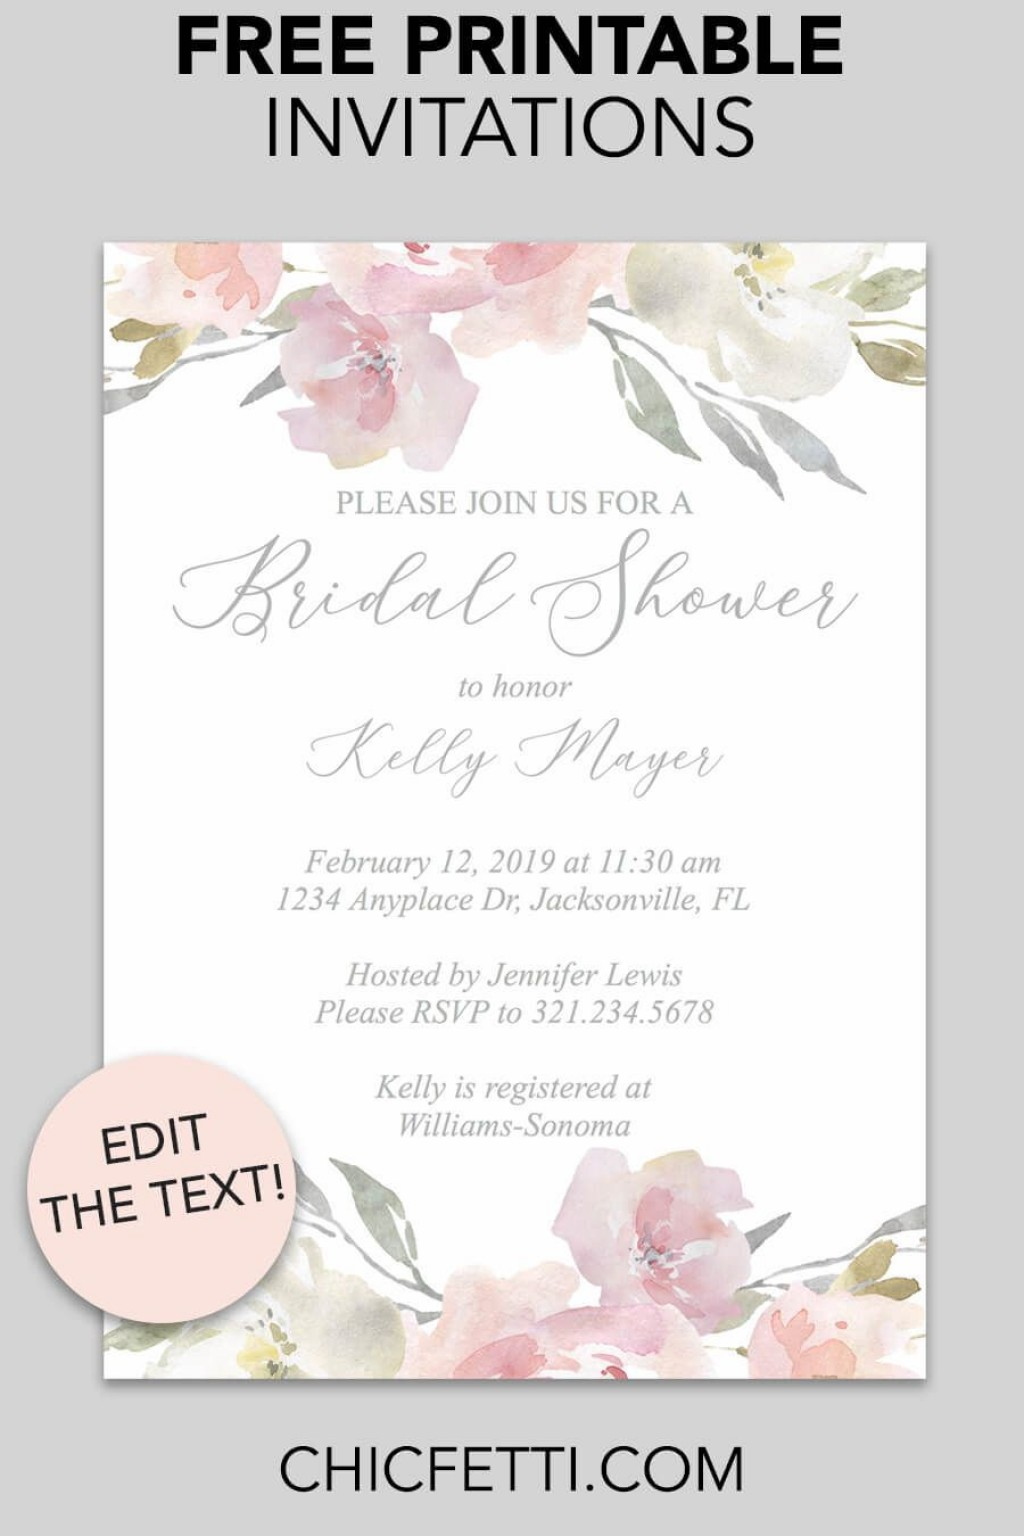 000 Magnificent Free Bridal Shower Invite Template Picture  Templates Invitation To Print Online Wedding For Microsoft WordLarge